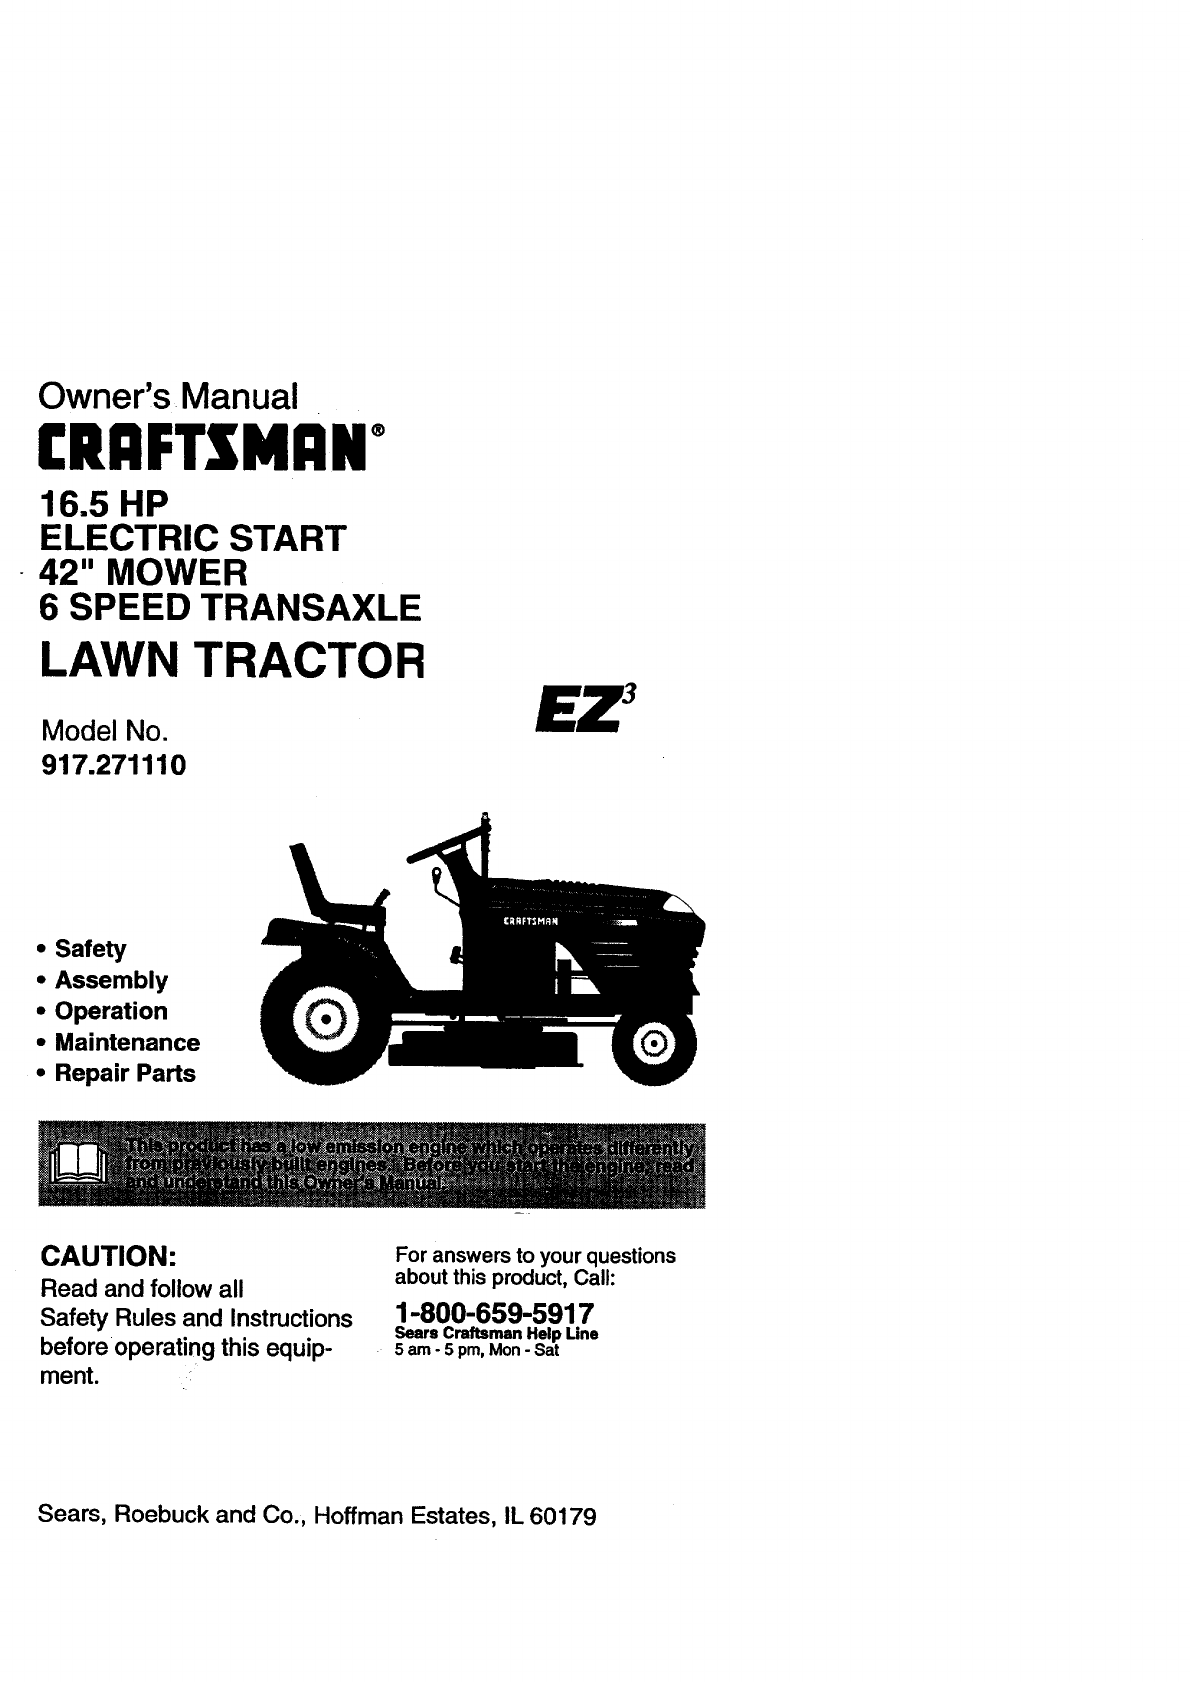 7a737f57 67af 49c5 a541 079cbf11b29b bg1 craftsman lawn mower 917 271110 user guide manualsonline com craftsman lawn tractor wiring schematic at reclaimingppi.co